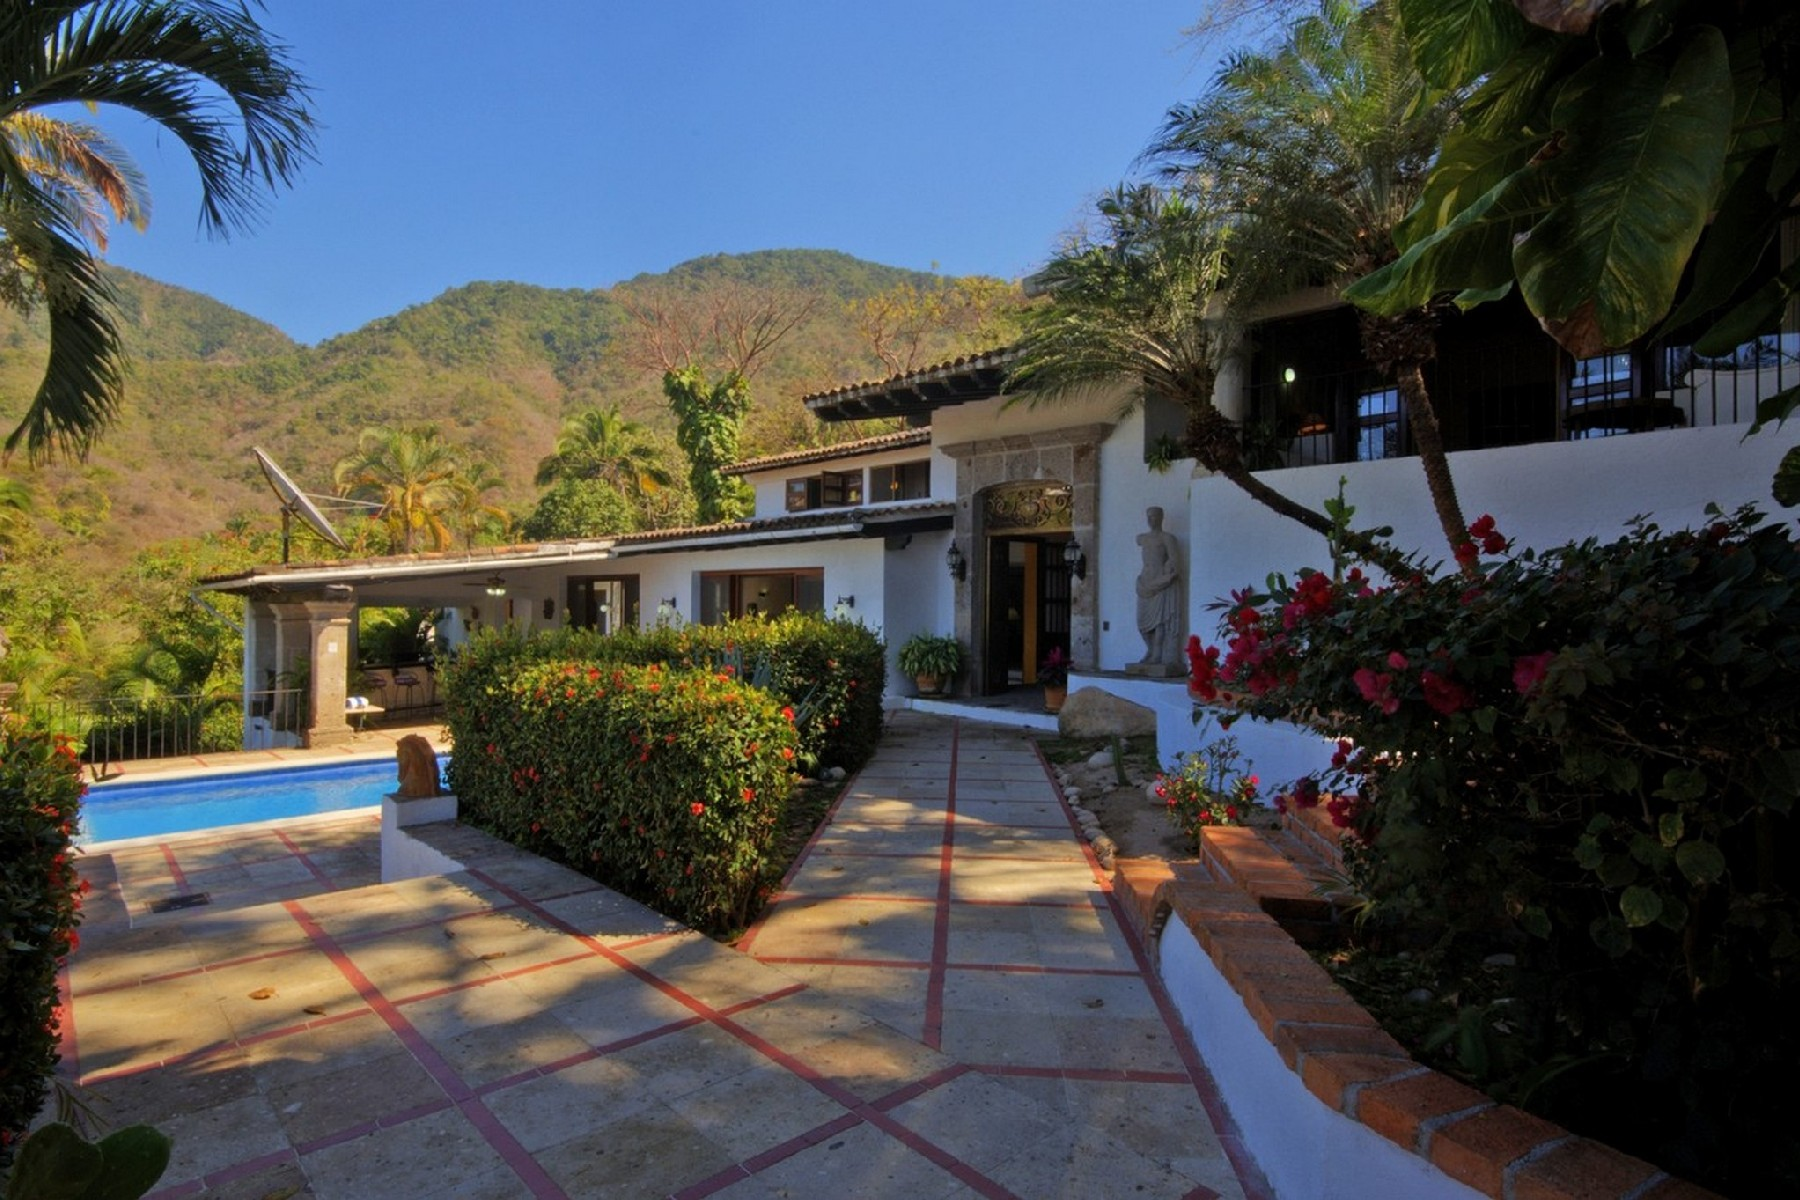 Additional photo for property listing at Hacienda Maria Elena + Adjancent Lot Carretera Barra de Navidad S/N Puerto Vallarta, Jalisco 48390 Mexico